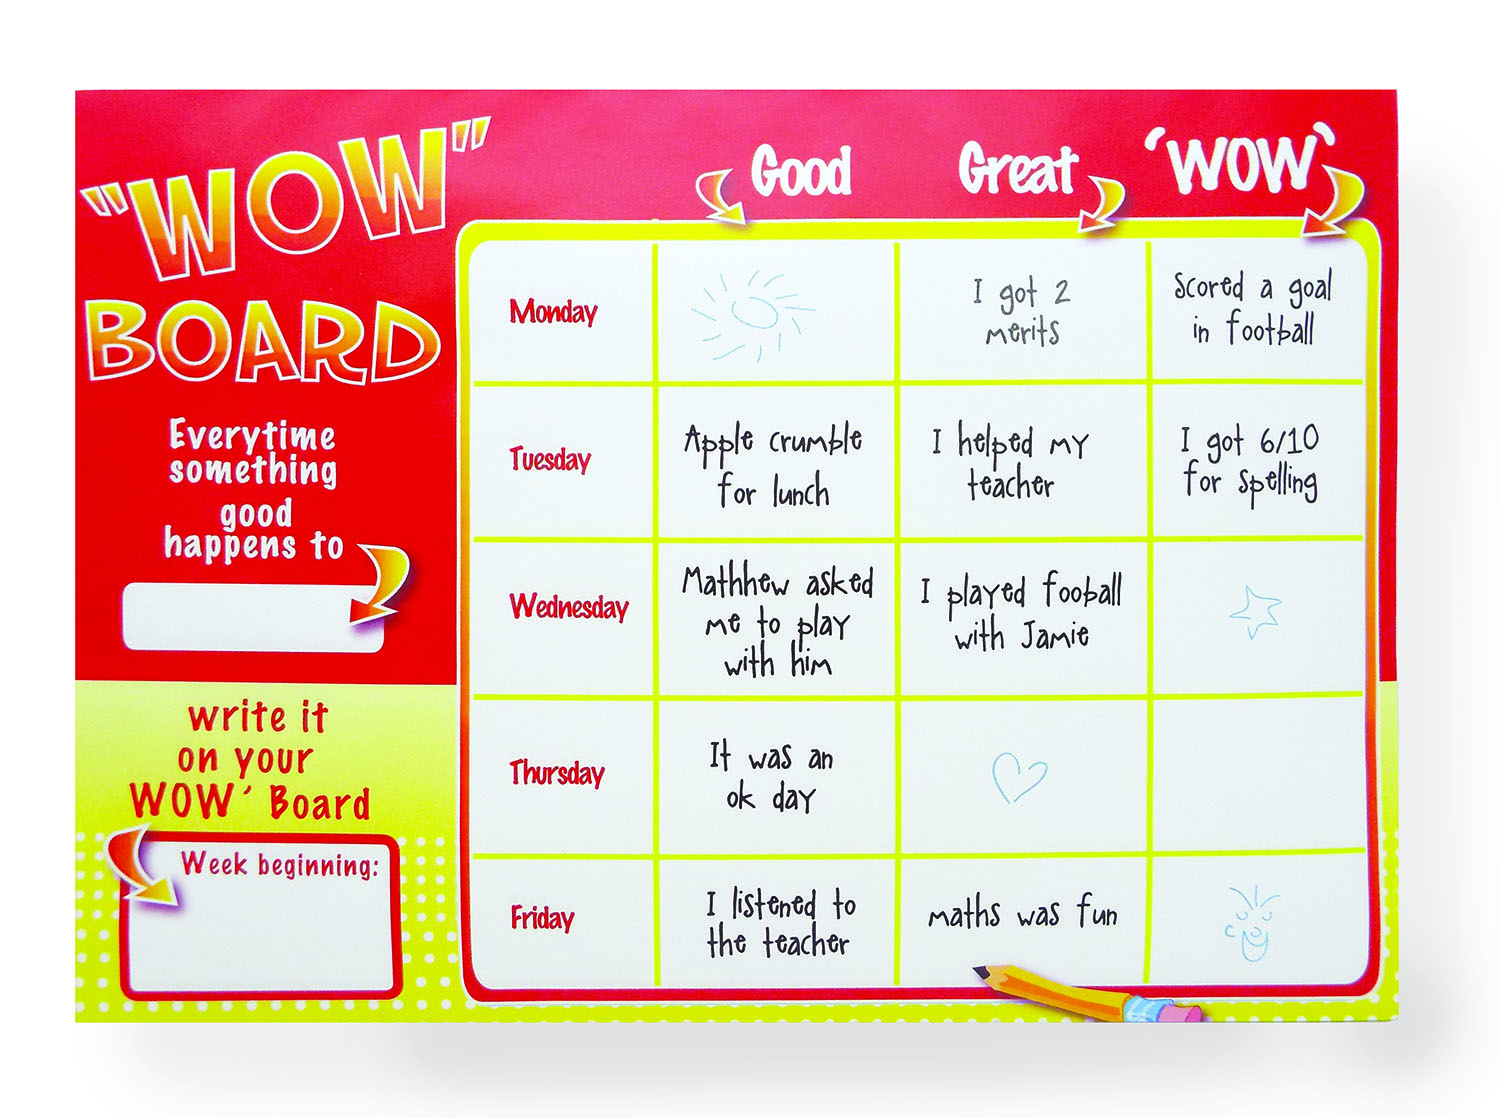 Wow Board for School -example page inside